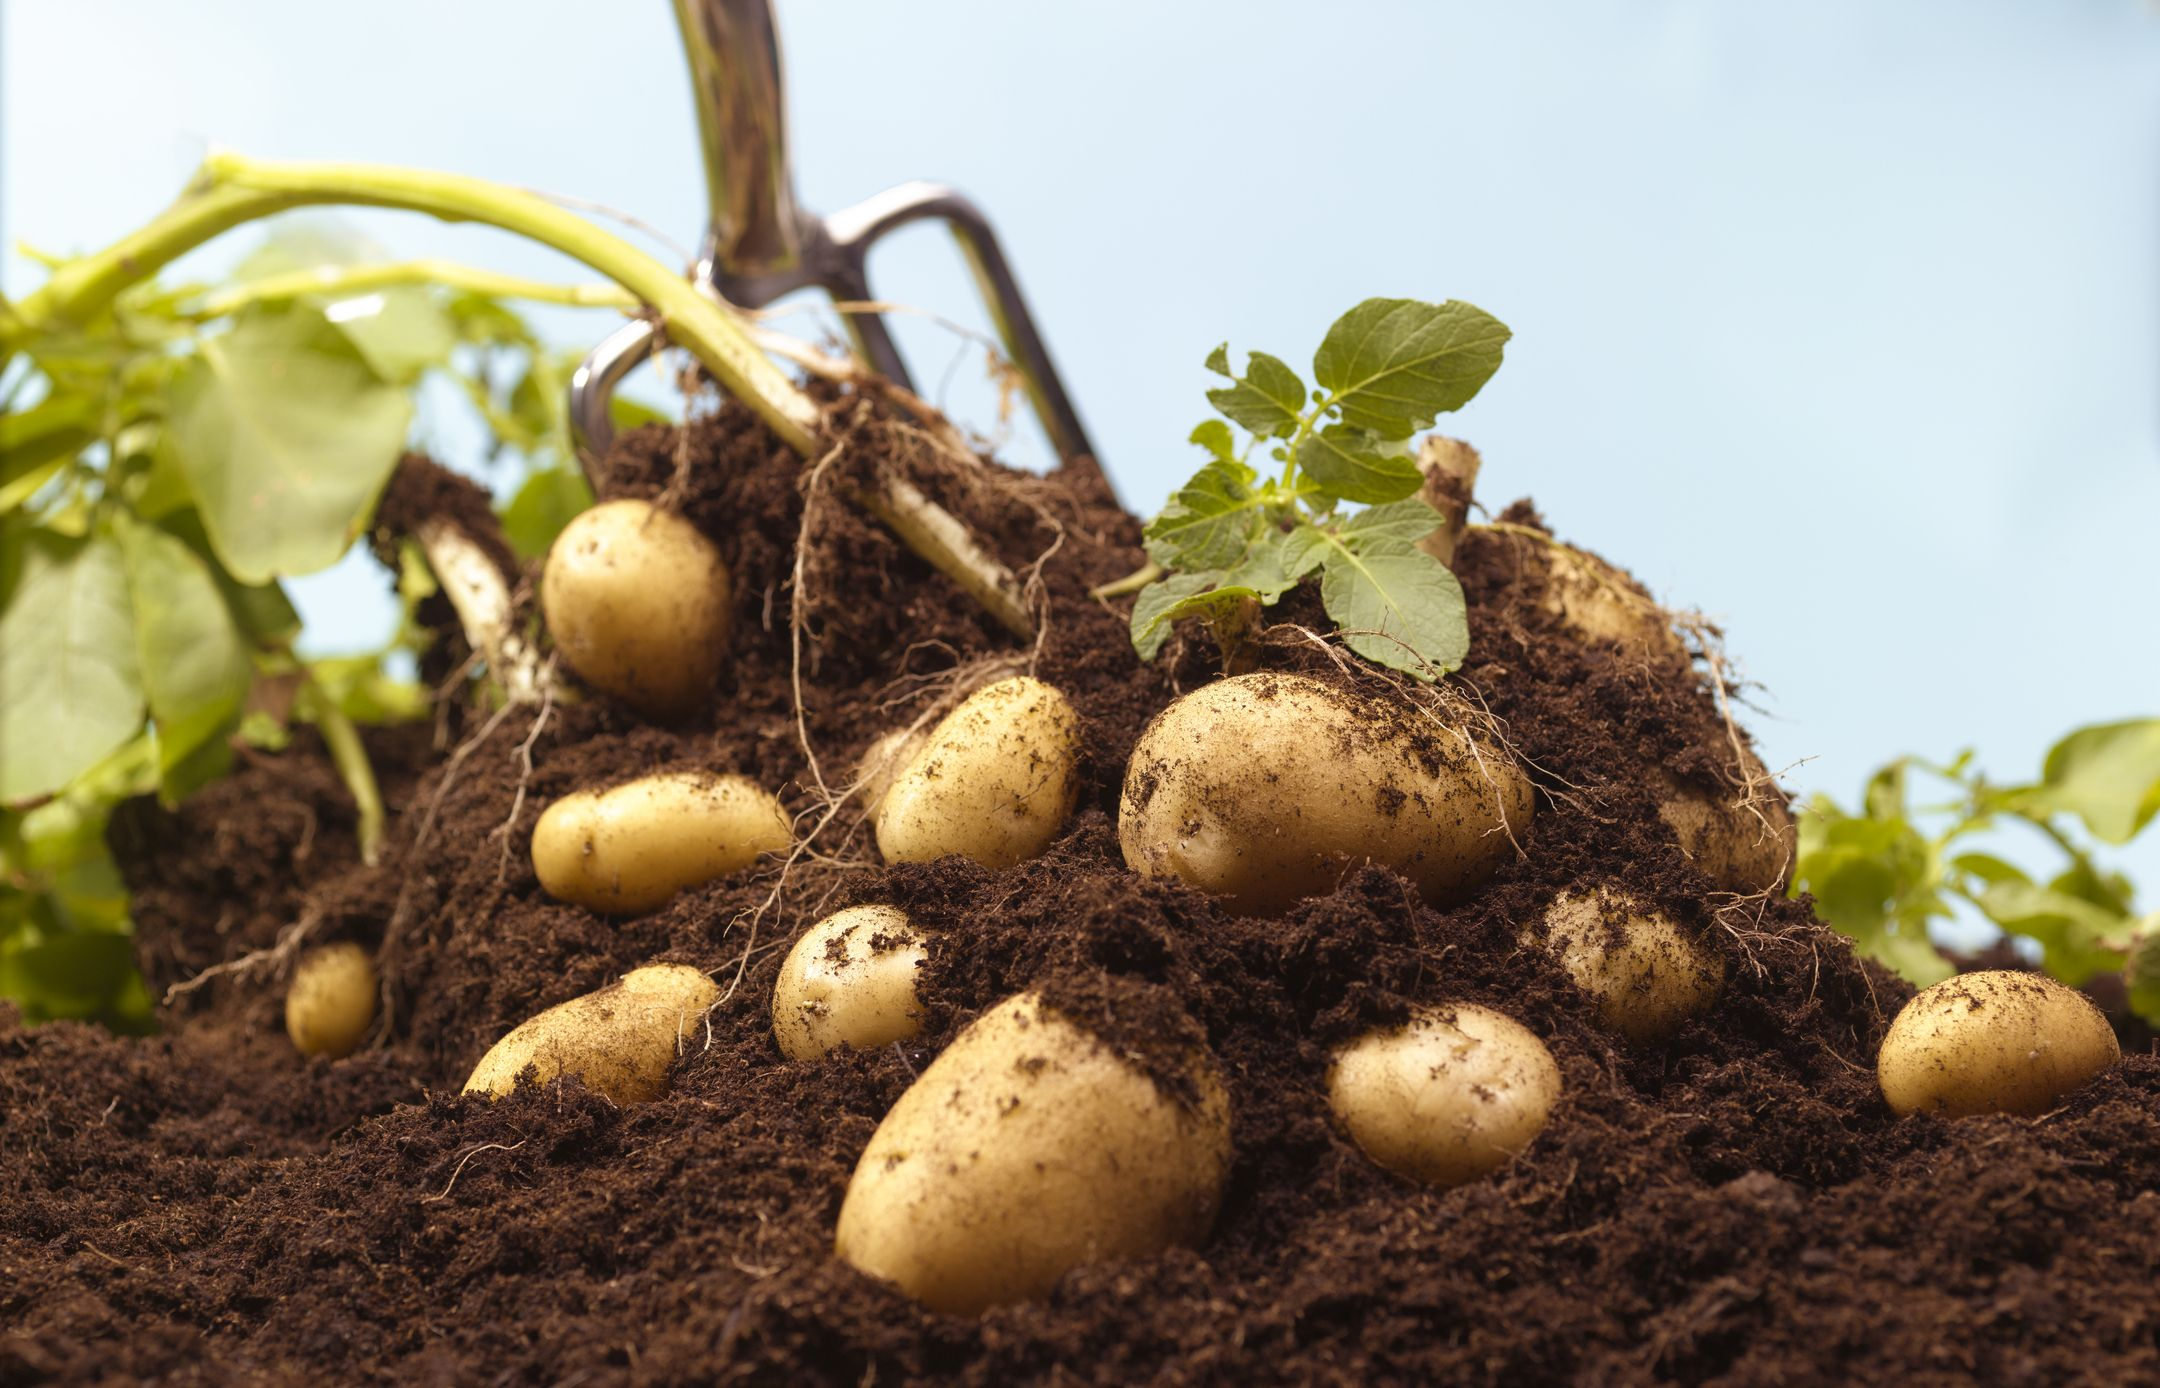 How to Grow Potatoes - Growing Potatoes